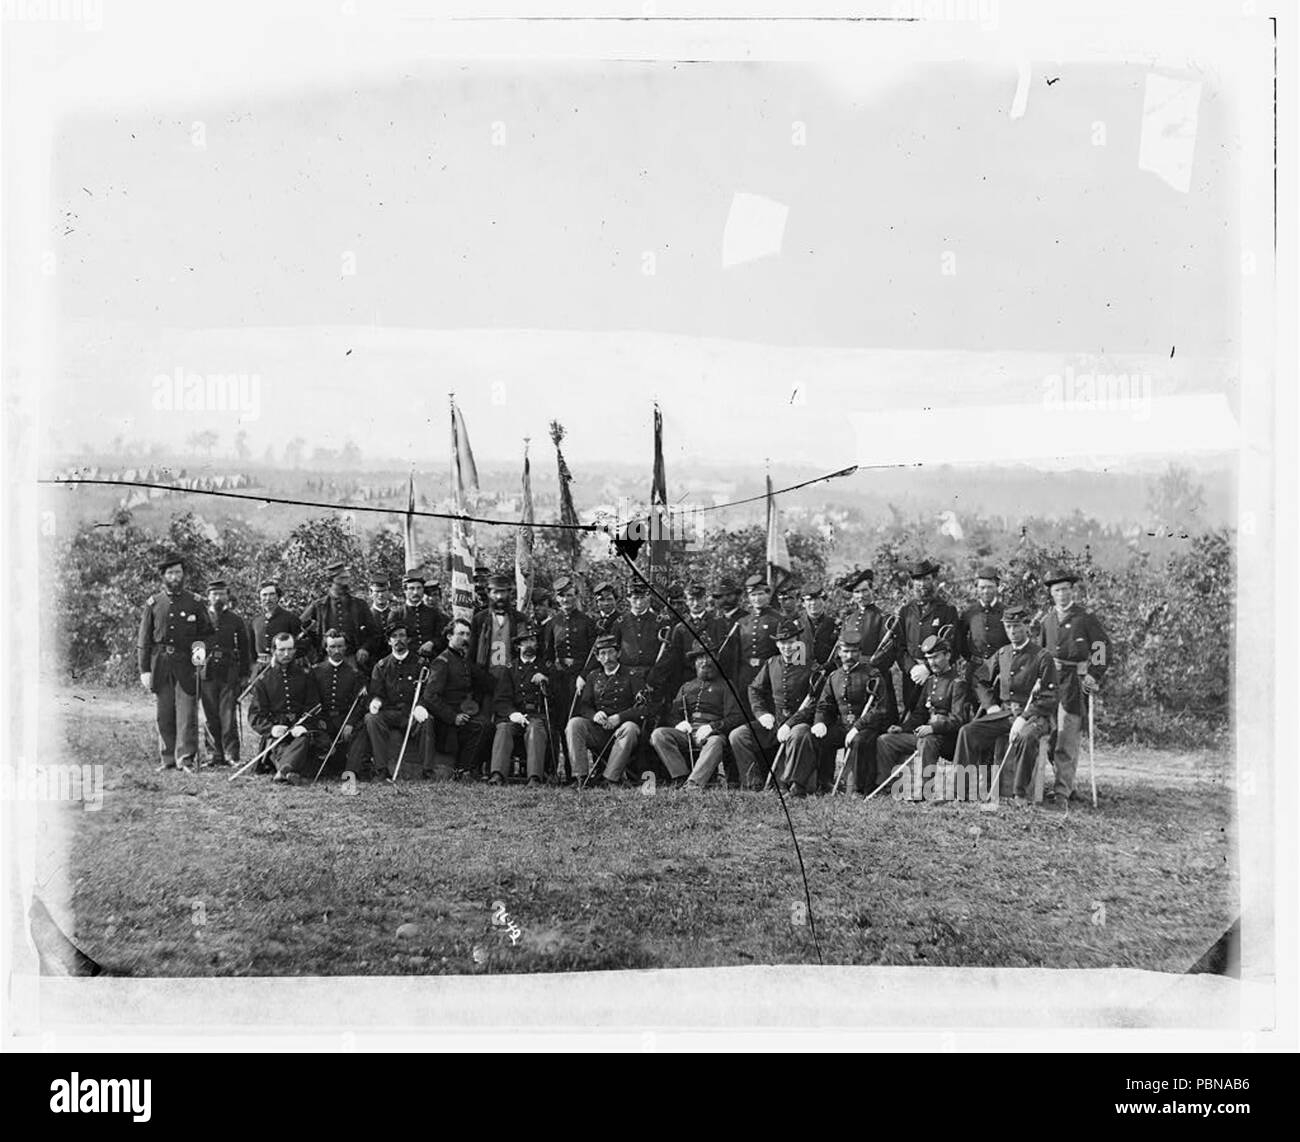 957 Lt. Col. James J. Smith and officers of 69th New York Infantry (Irish Brigade) - Stock Image